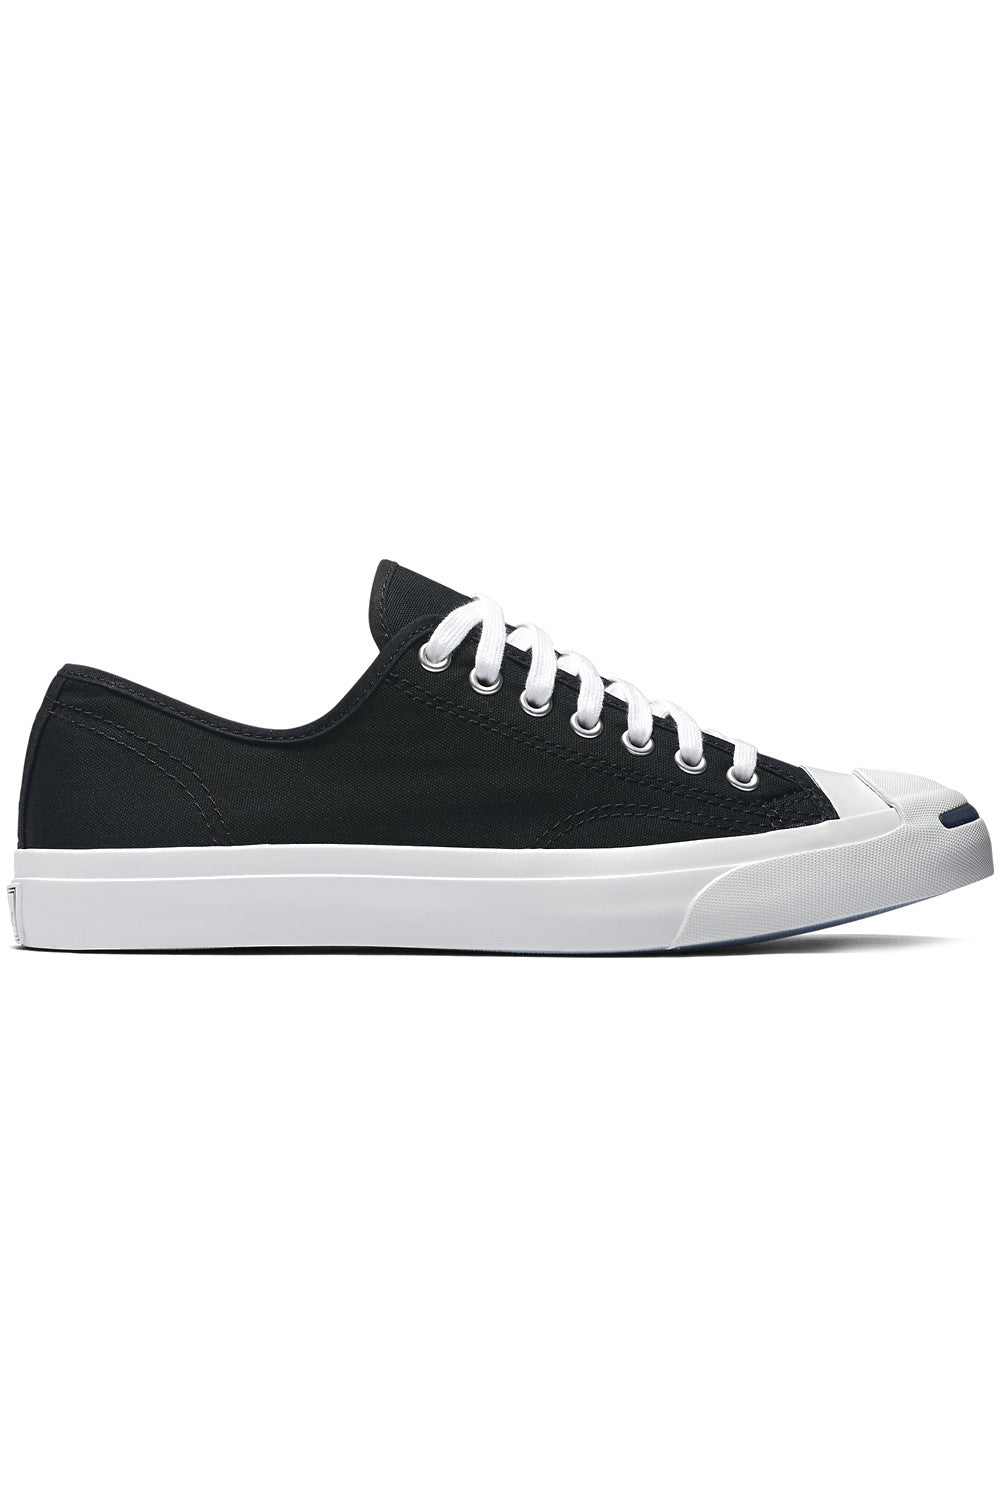 ade8aadd3de Converse Jack Purcell Classic CP OX Shoes – Mainland Skate   Surf